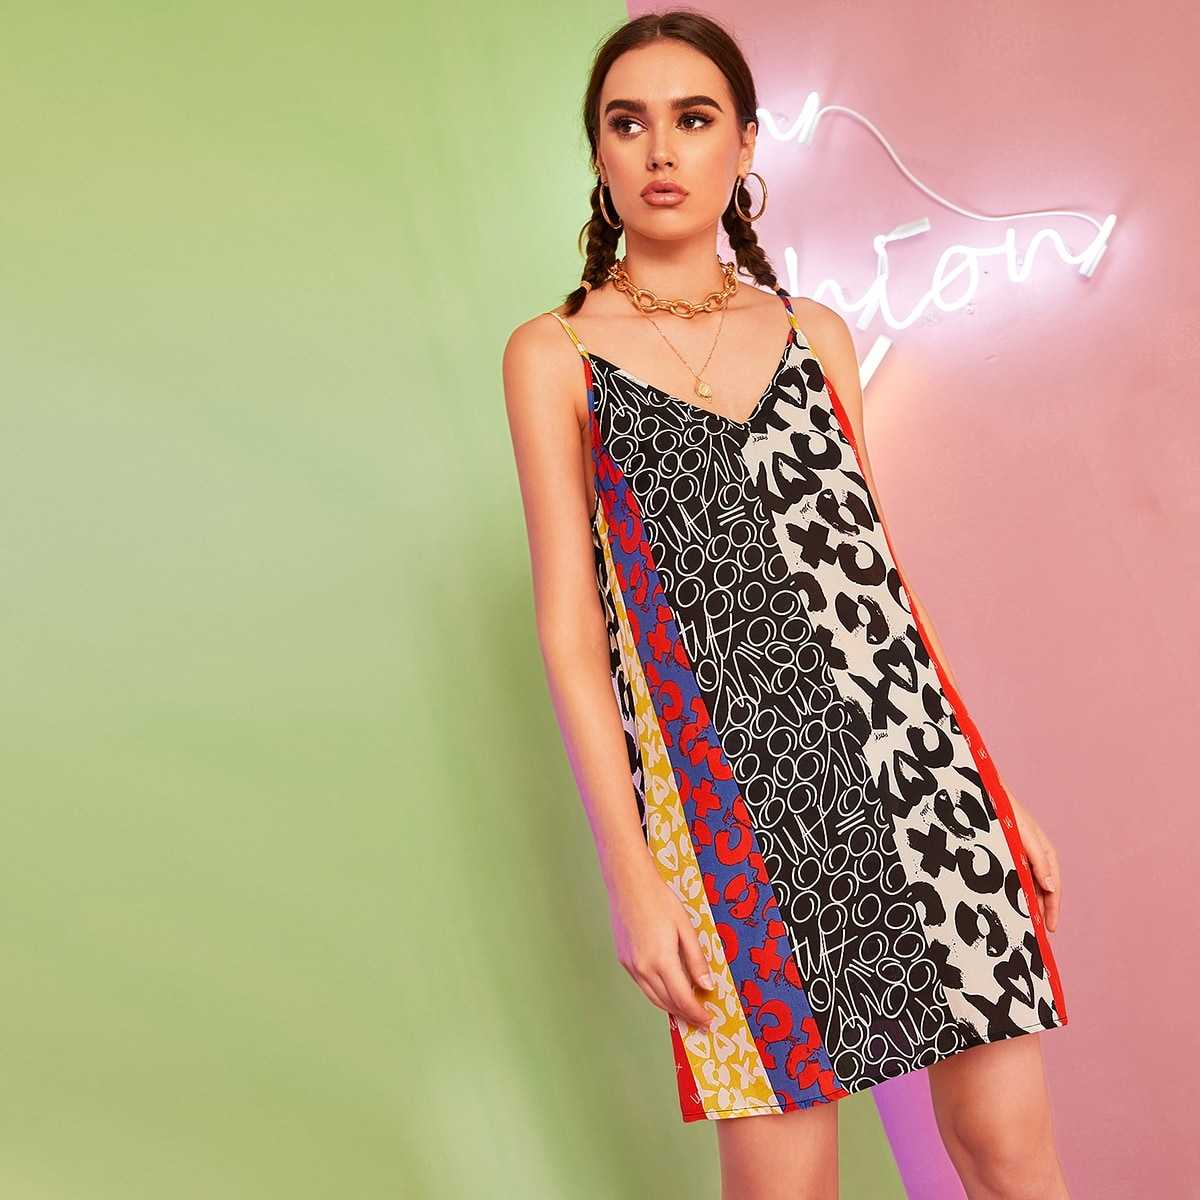 Mixed Print Slip Tunic Dress in Multicolor by ROMWE on GOOFASH